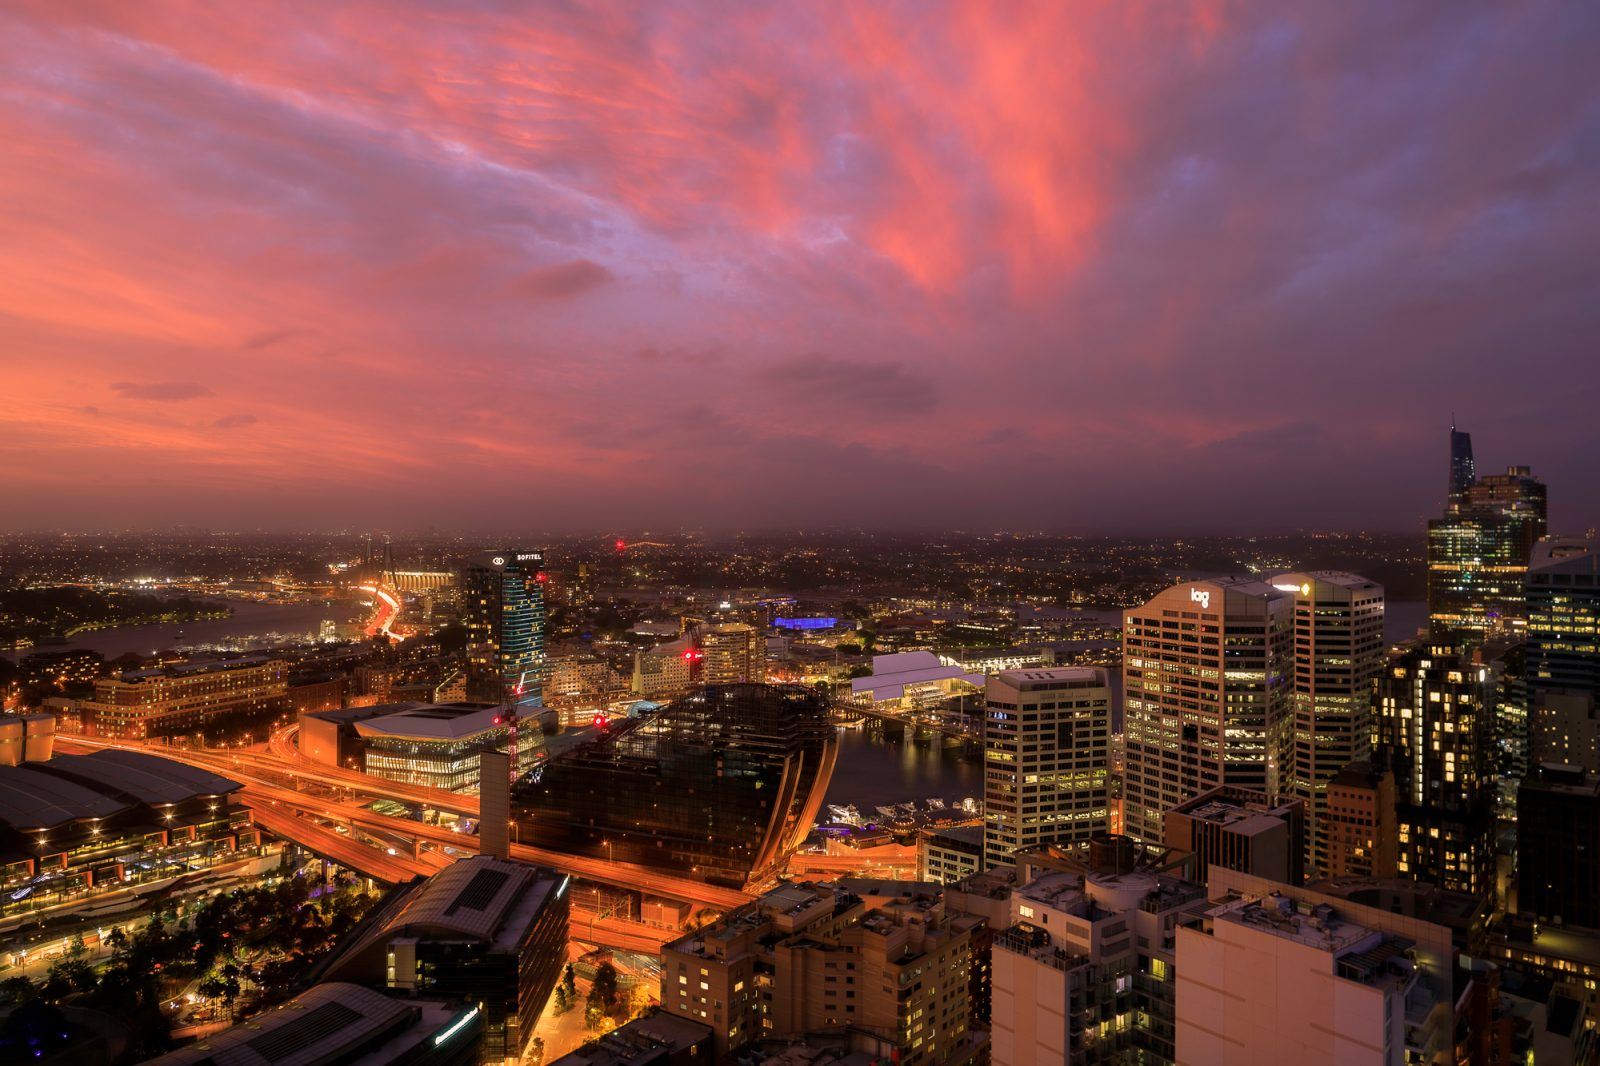 Epic skies over looking Darling Harbour and Sydney CBD from our private balcony at the Meriton Suites Kent Street. Level 32